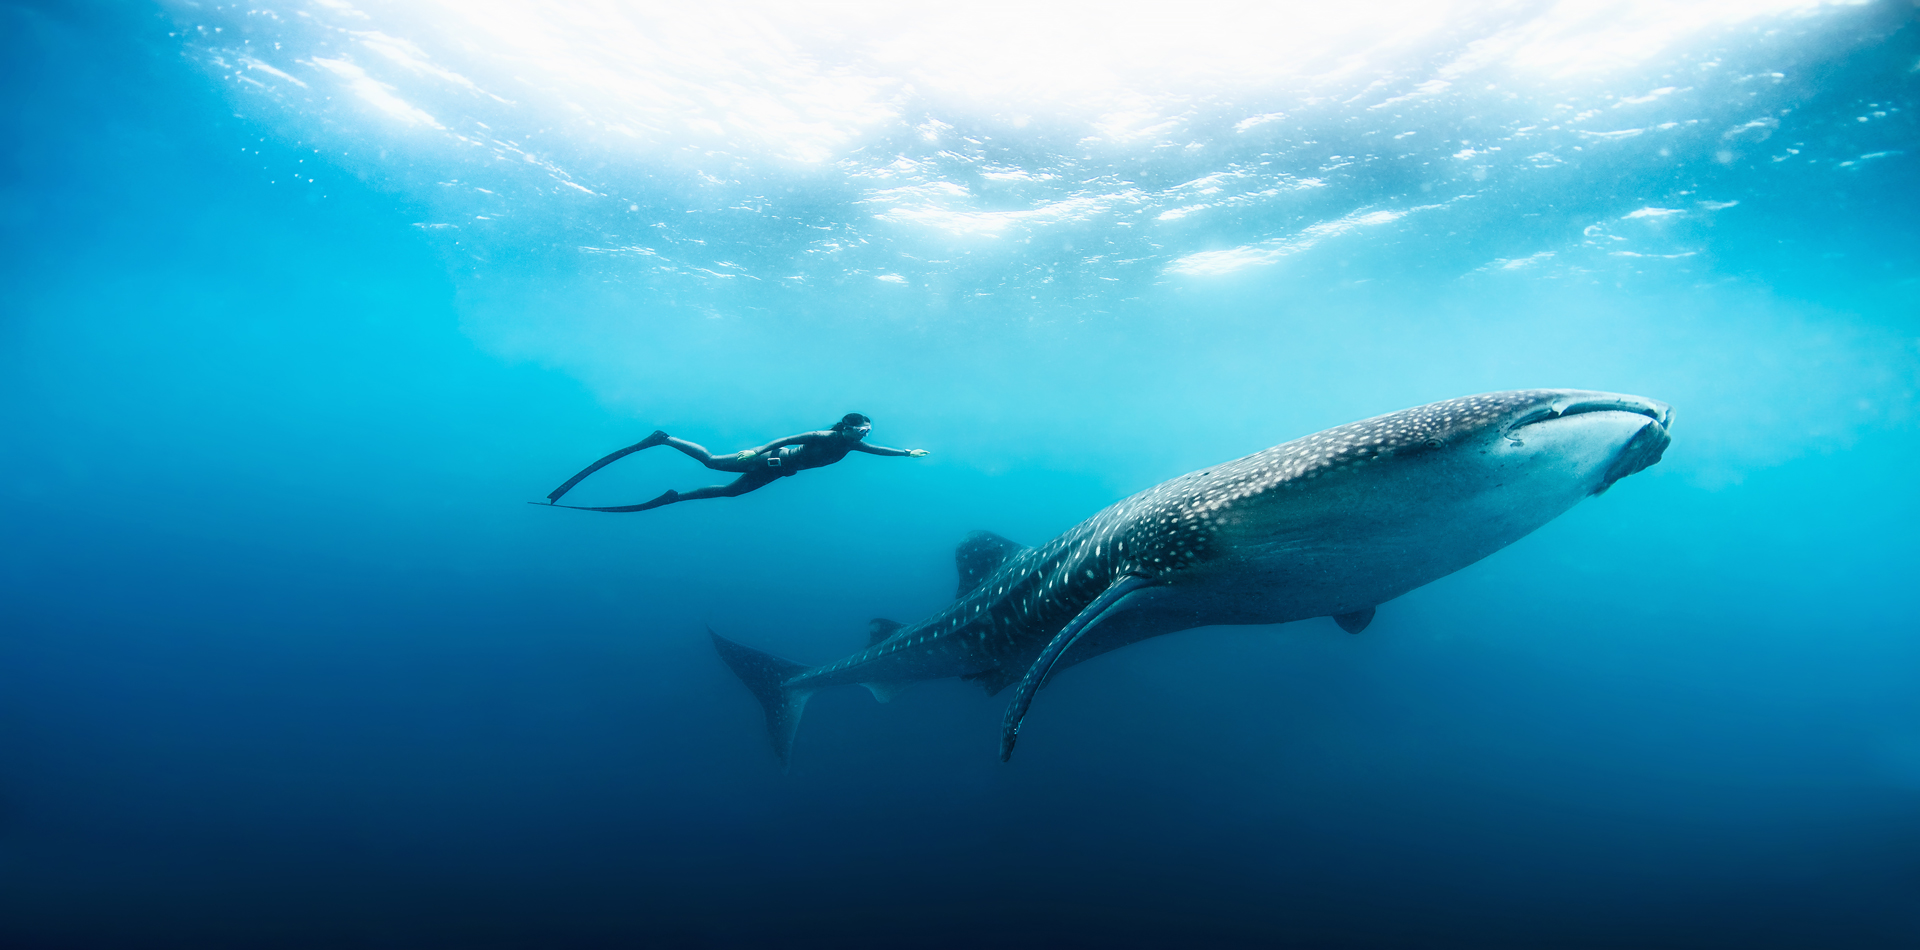 whale shark diving underwater free diver